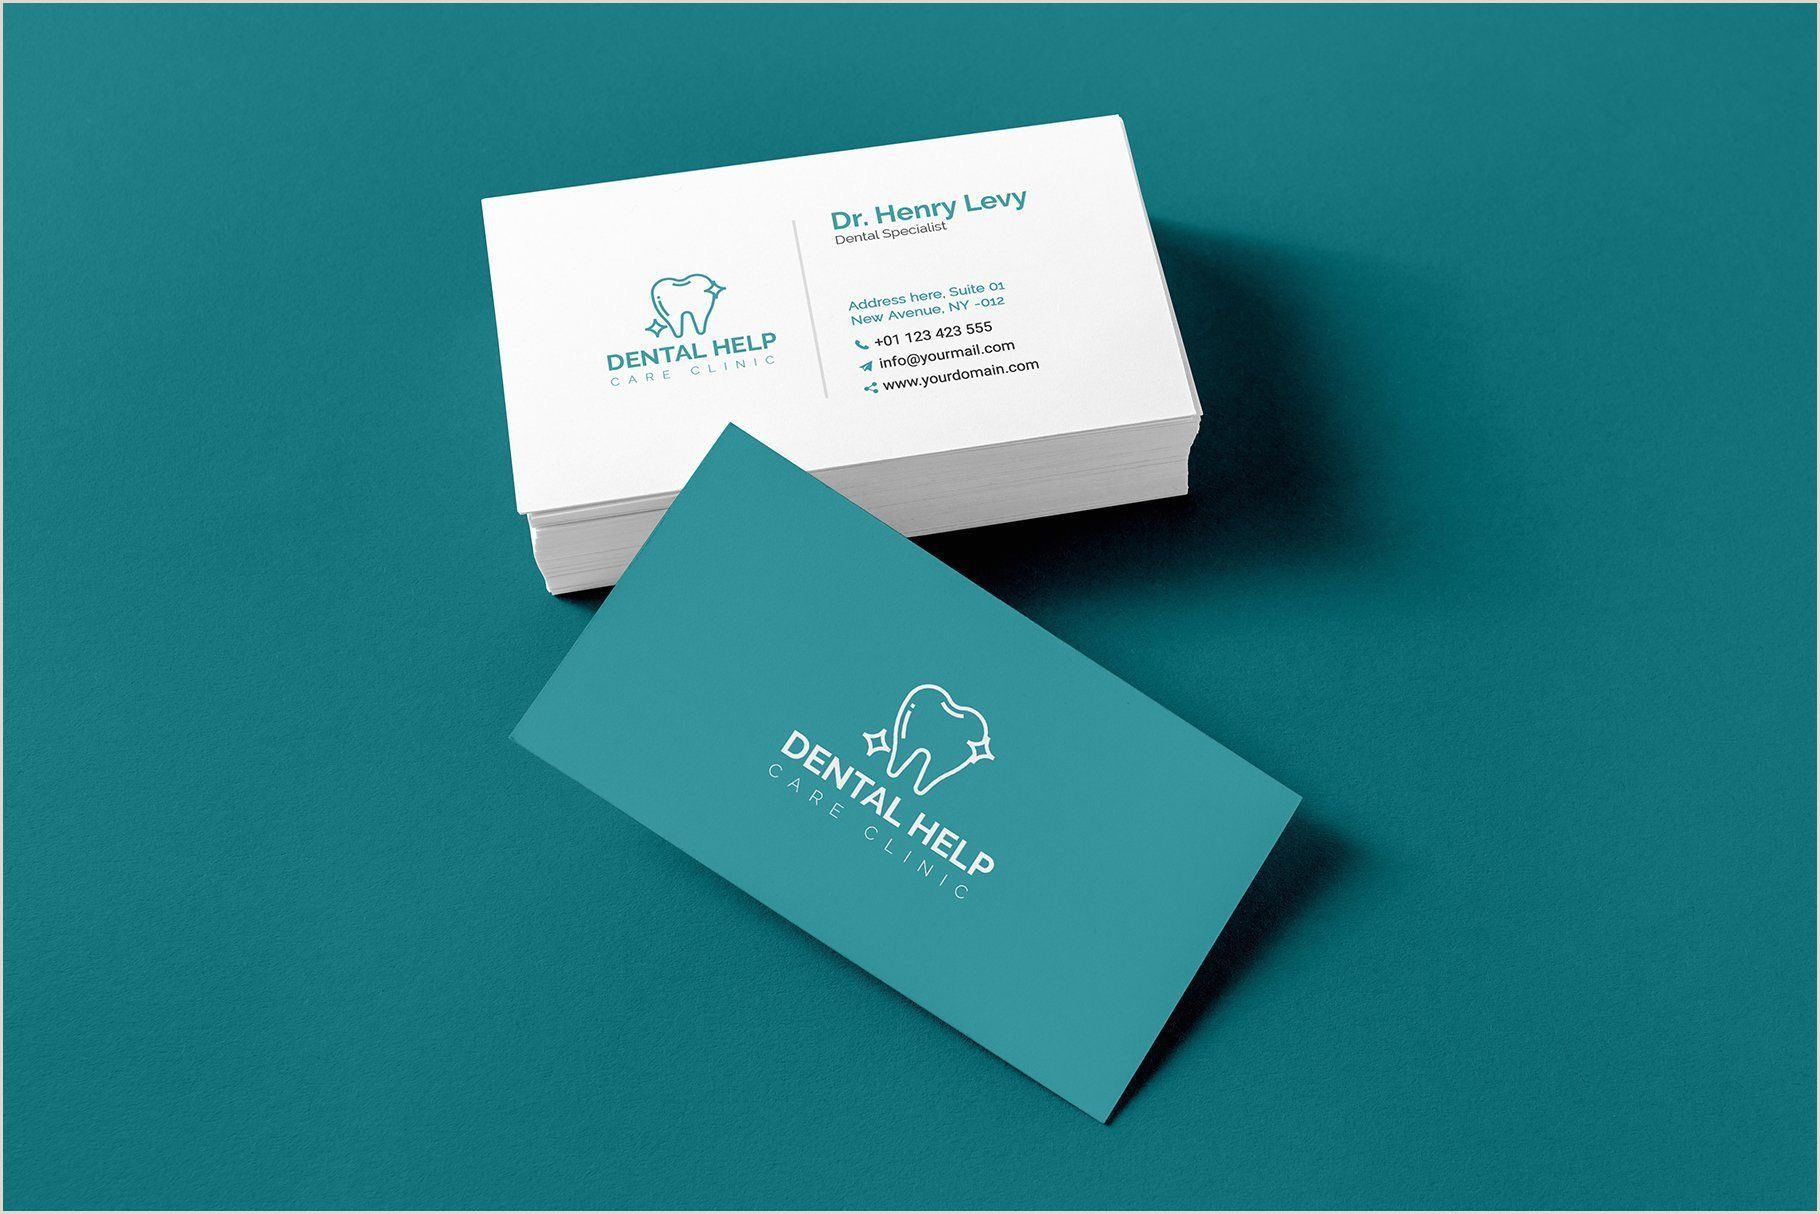 Order Personal Business Cards Dentist Business Card Templates In 2020